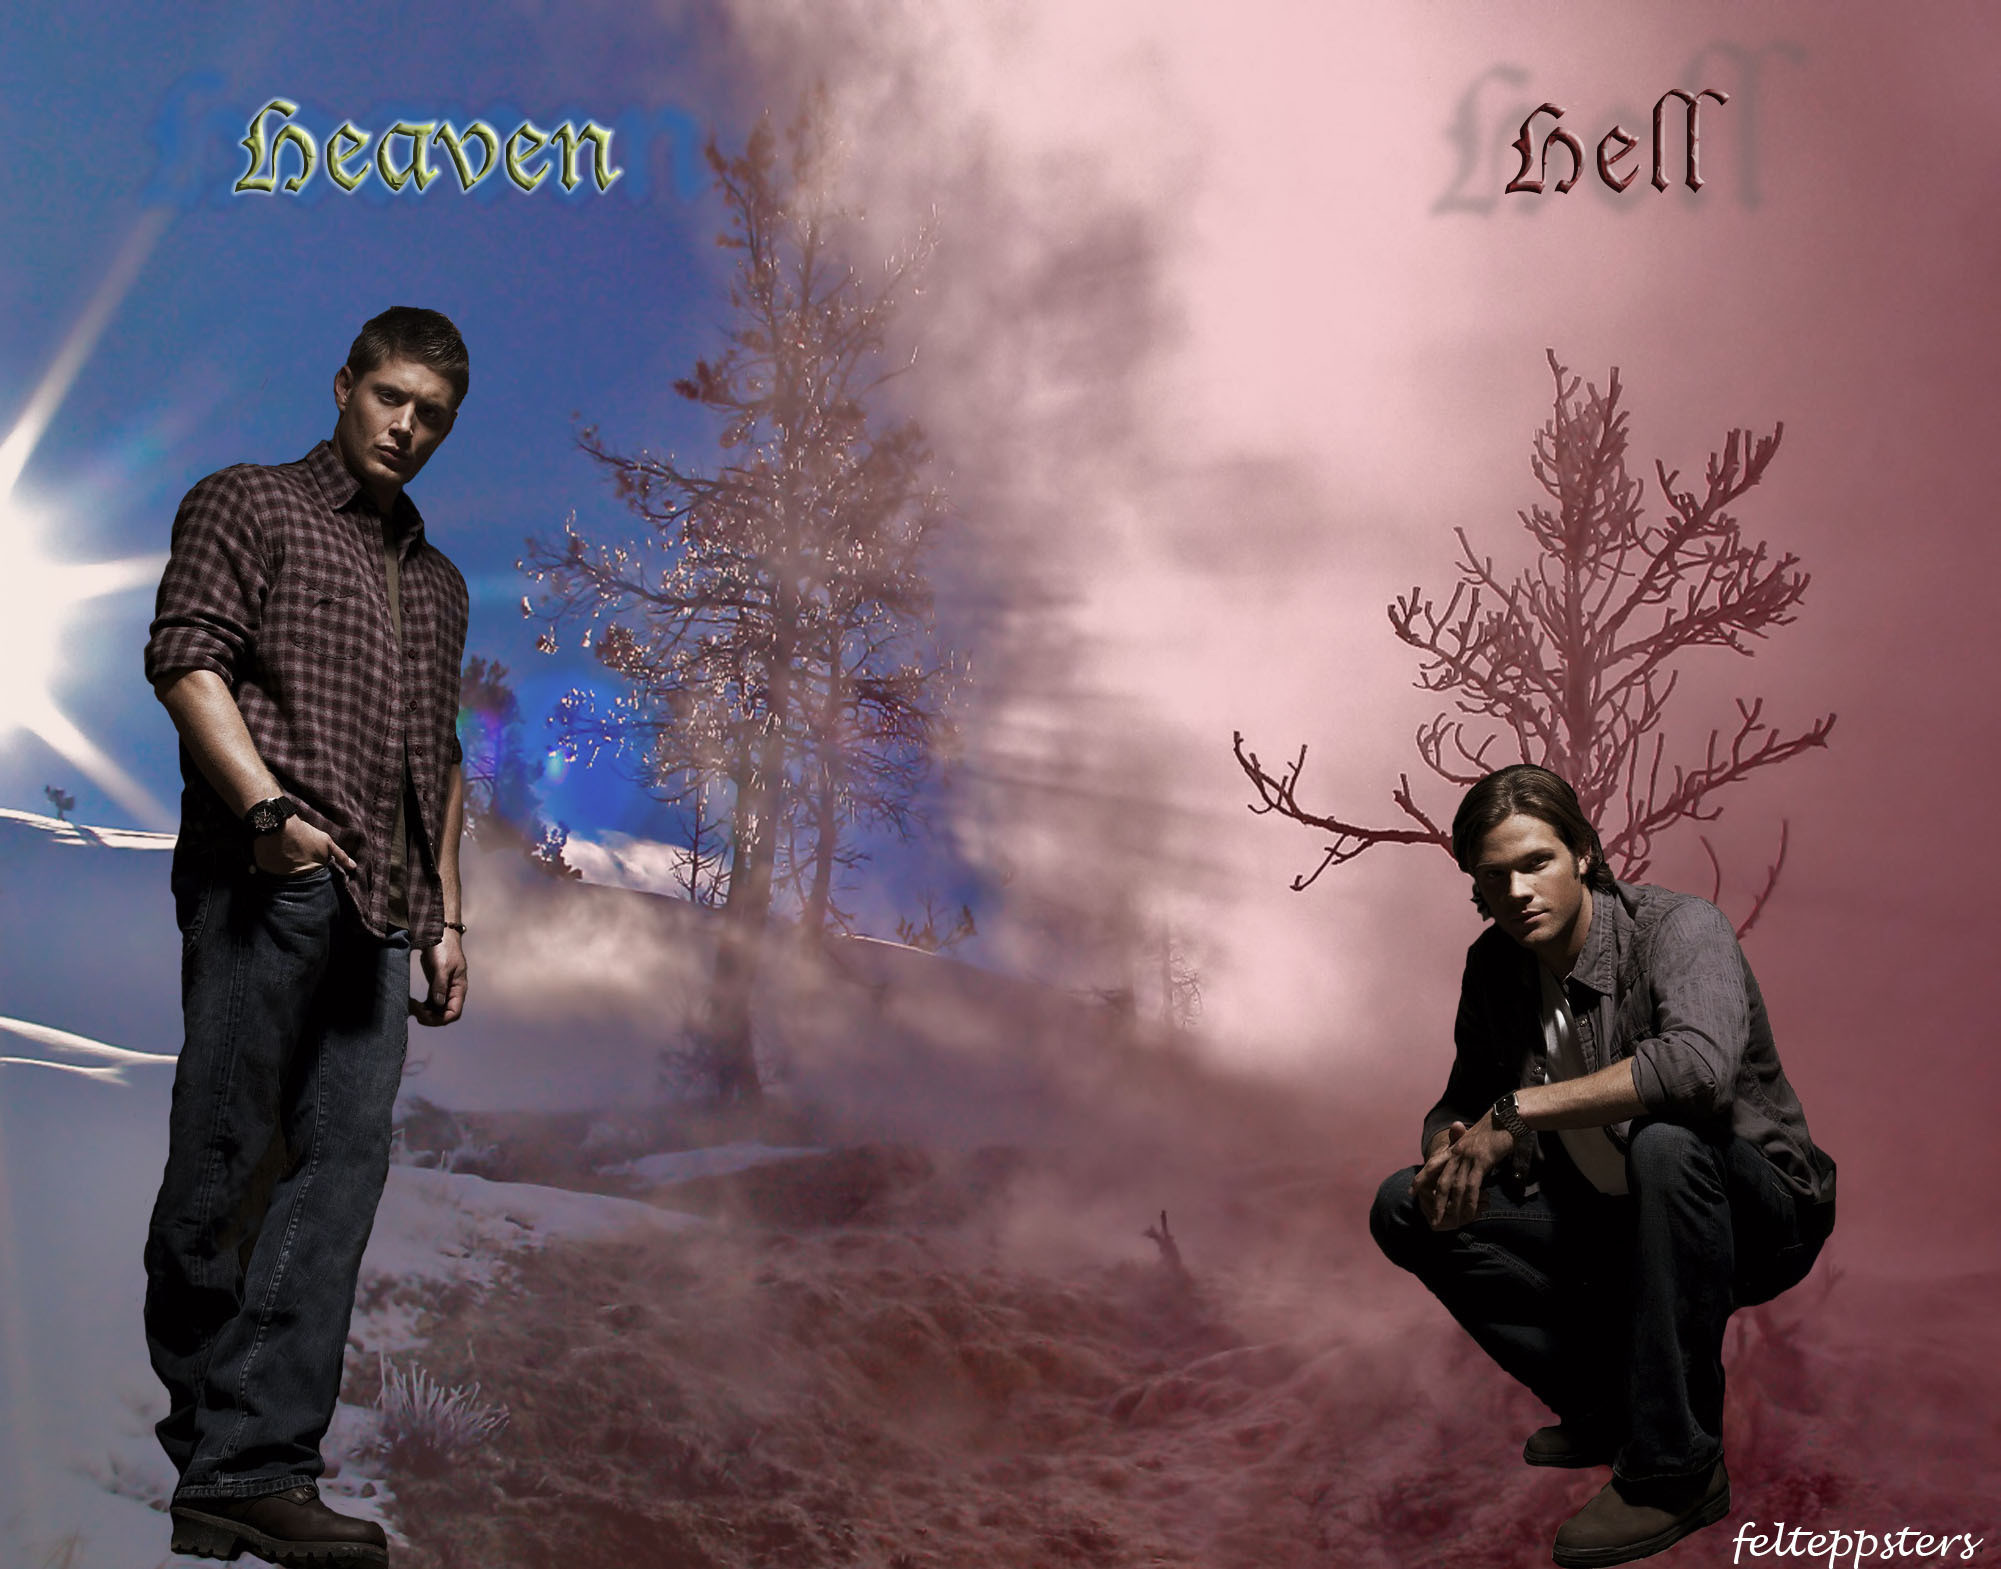 Supernatural images Heaven and Hell HD wallpaper and background photos .